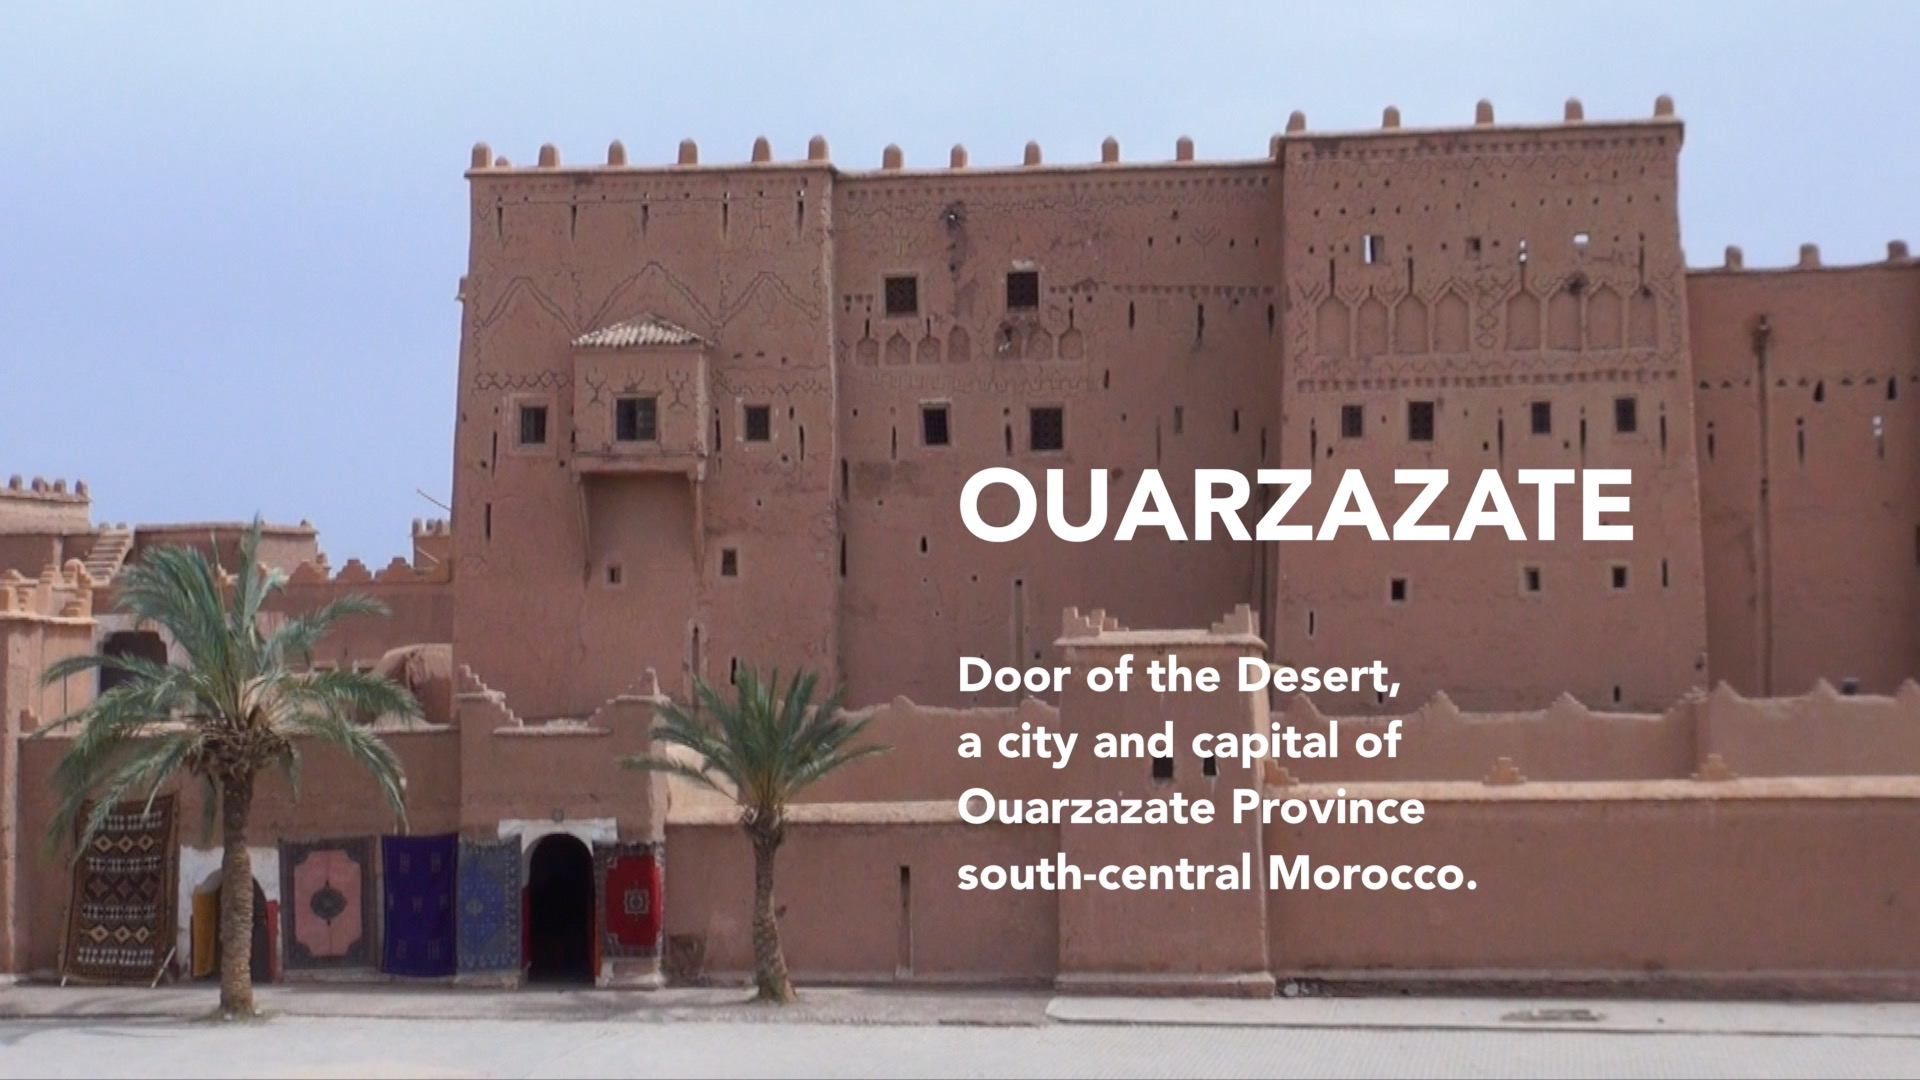 Ouarzazate City in Morocco